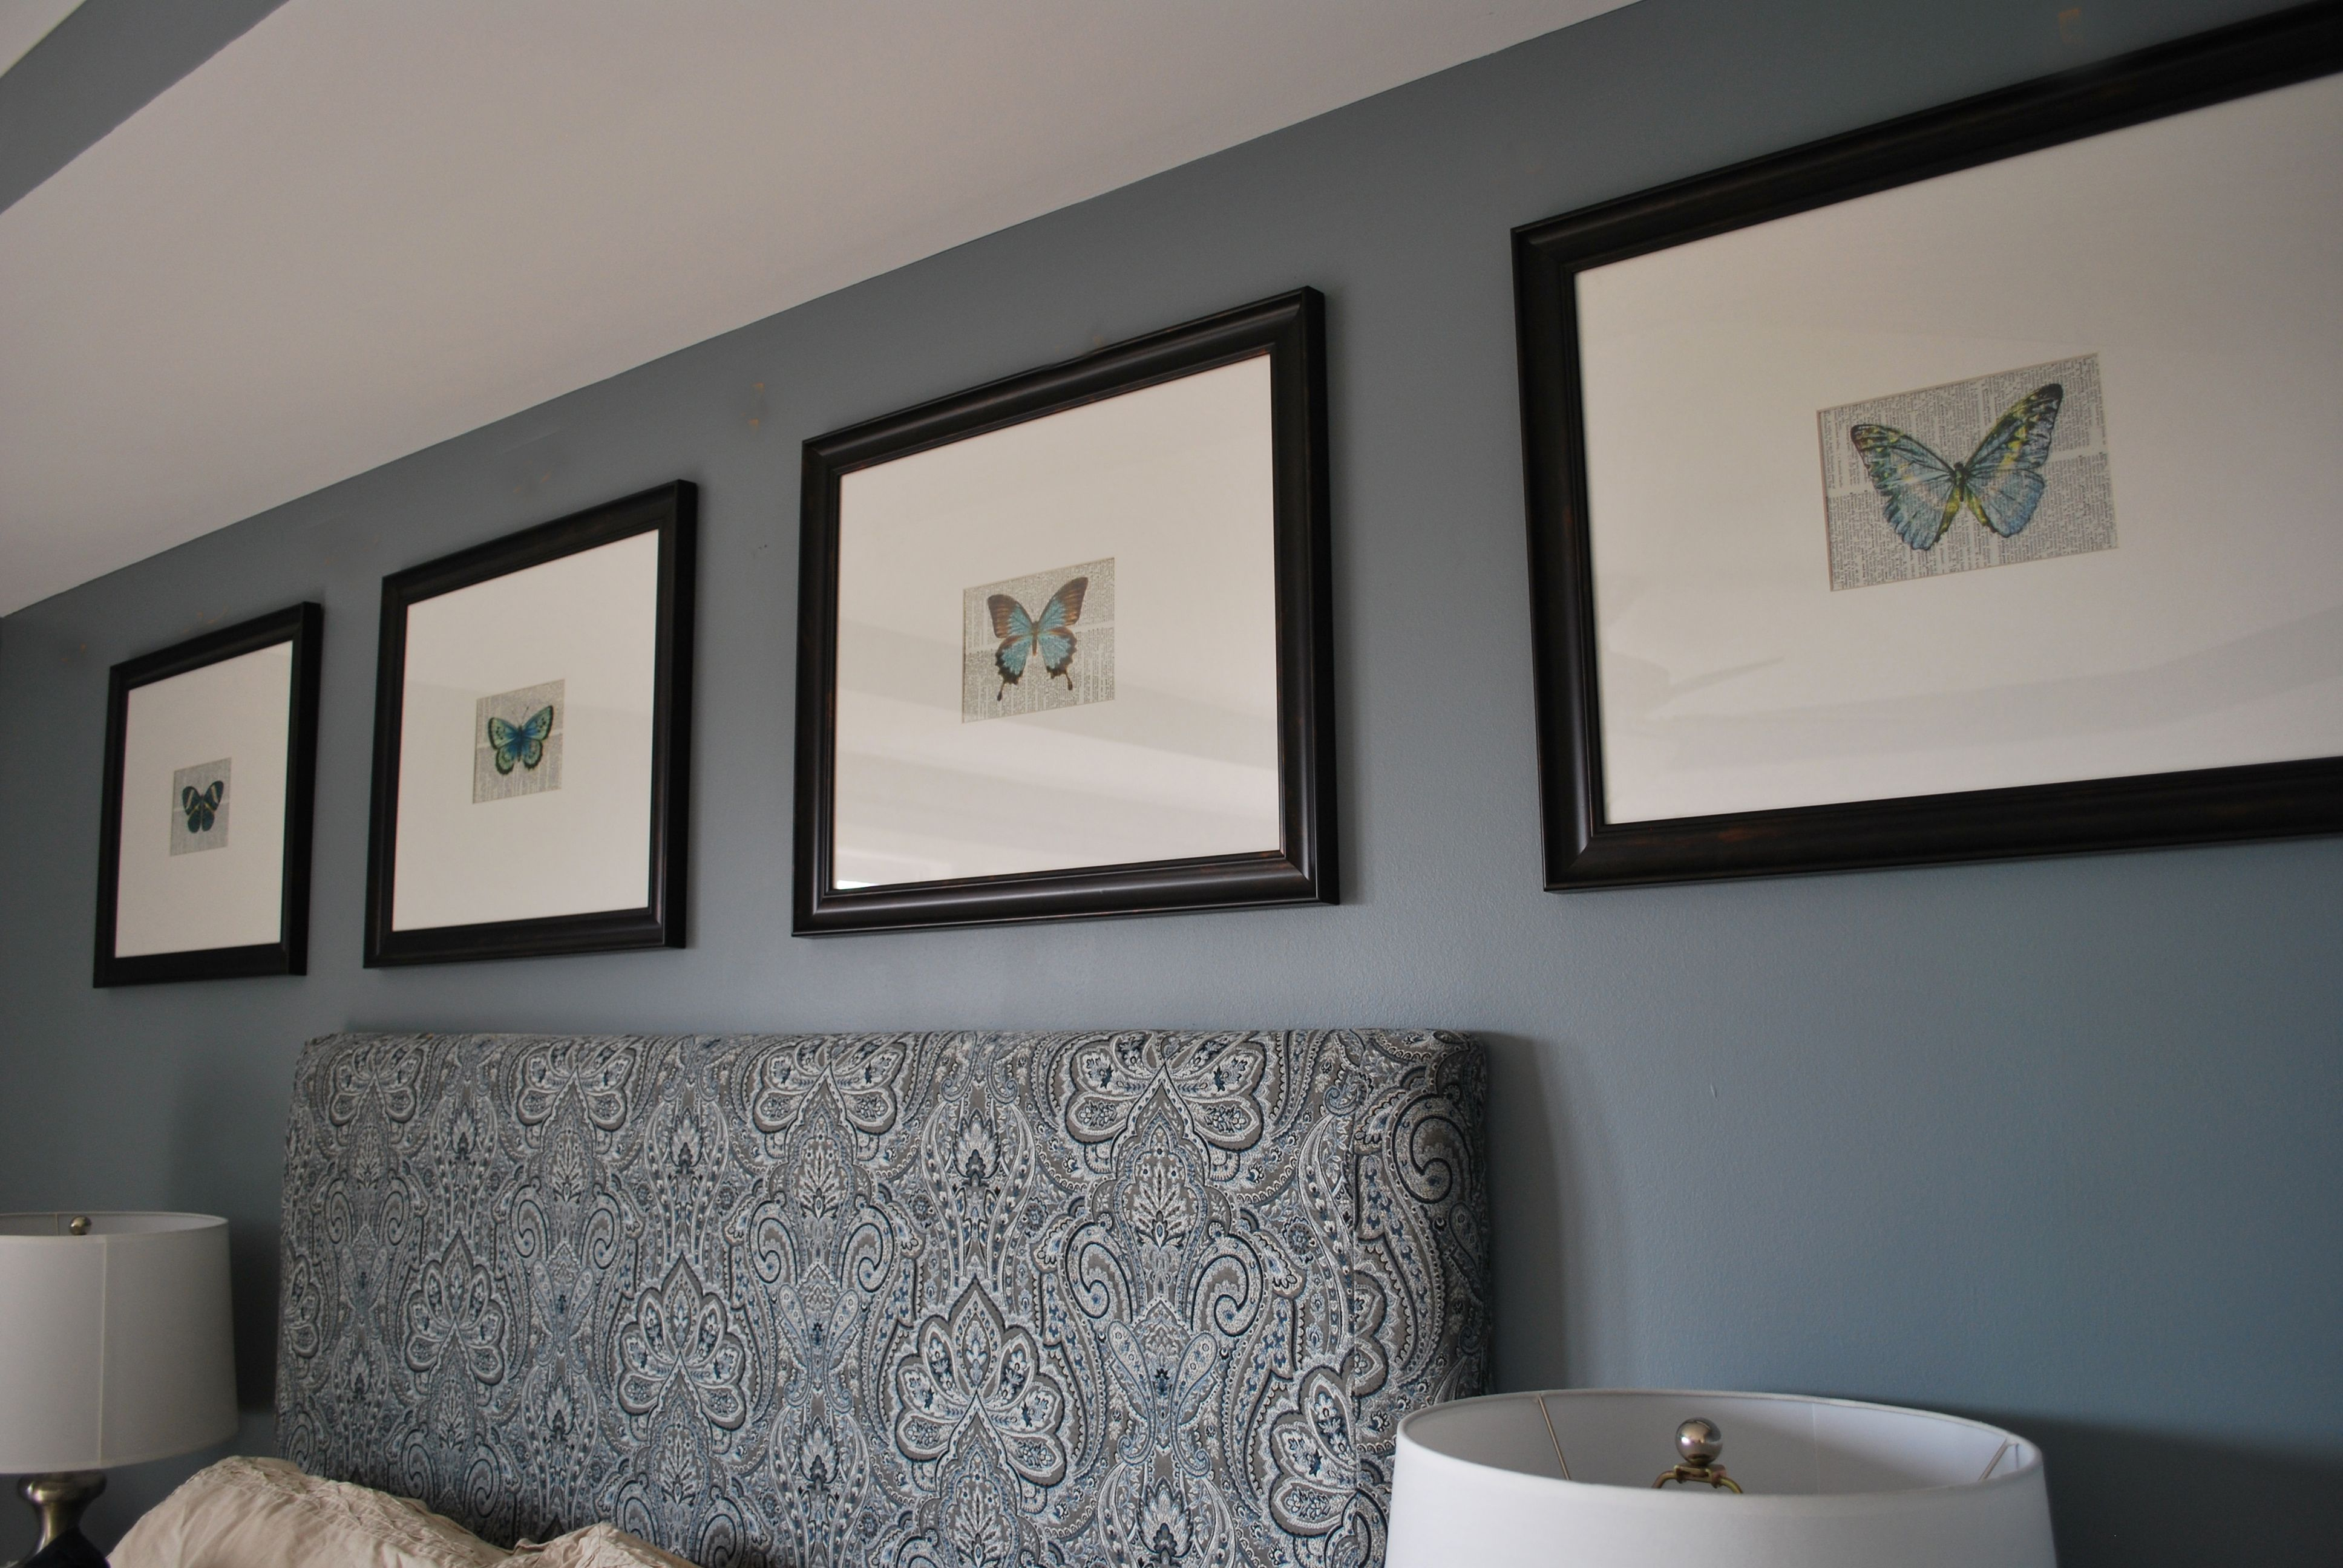 Valspar Sharkfin paintlooking for the perfect gray blue for the